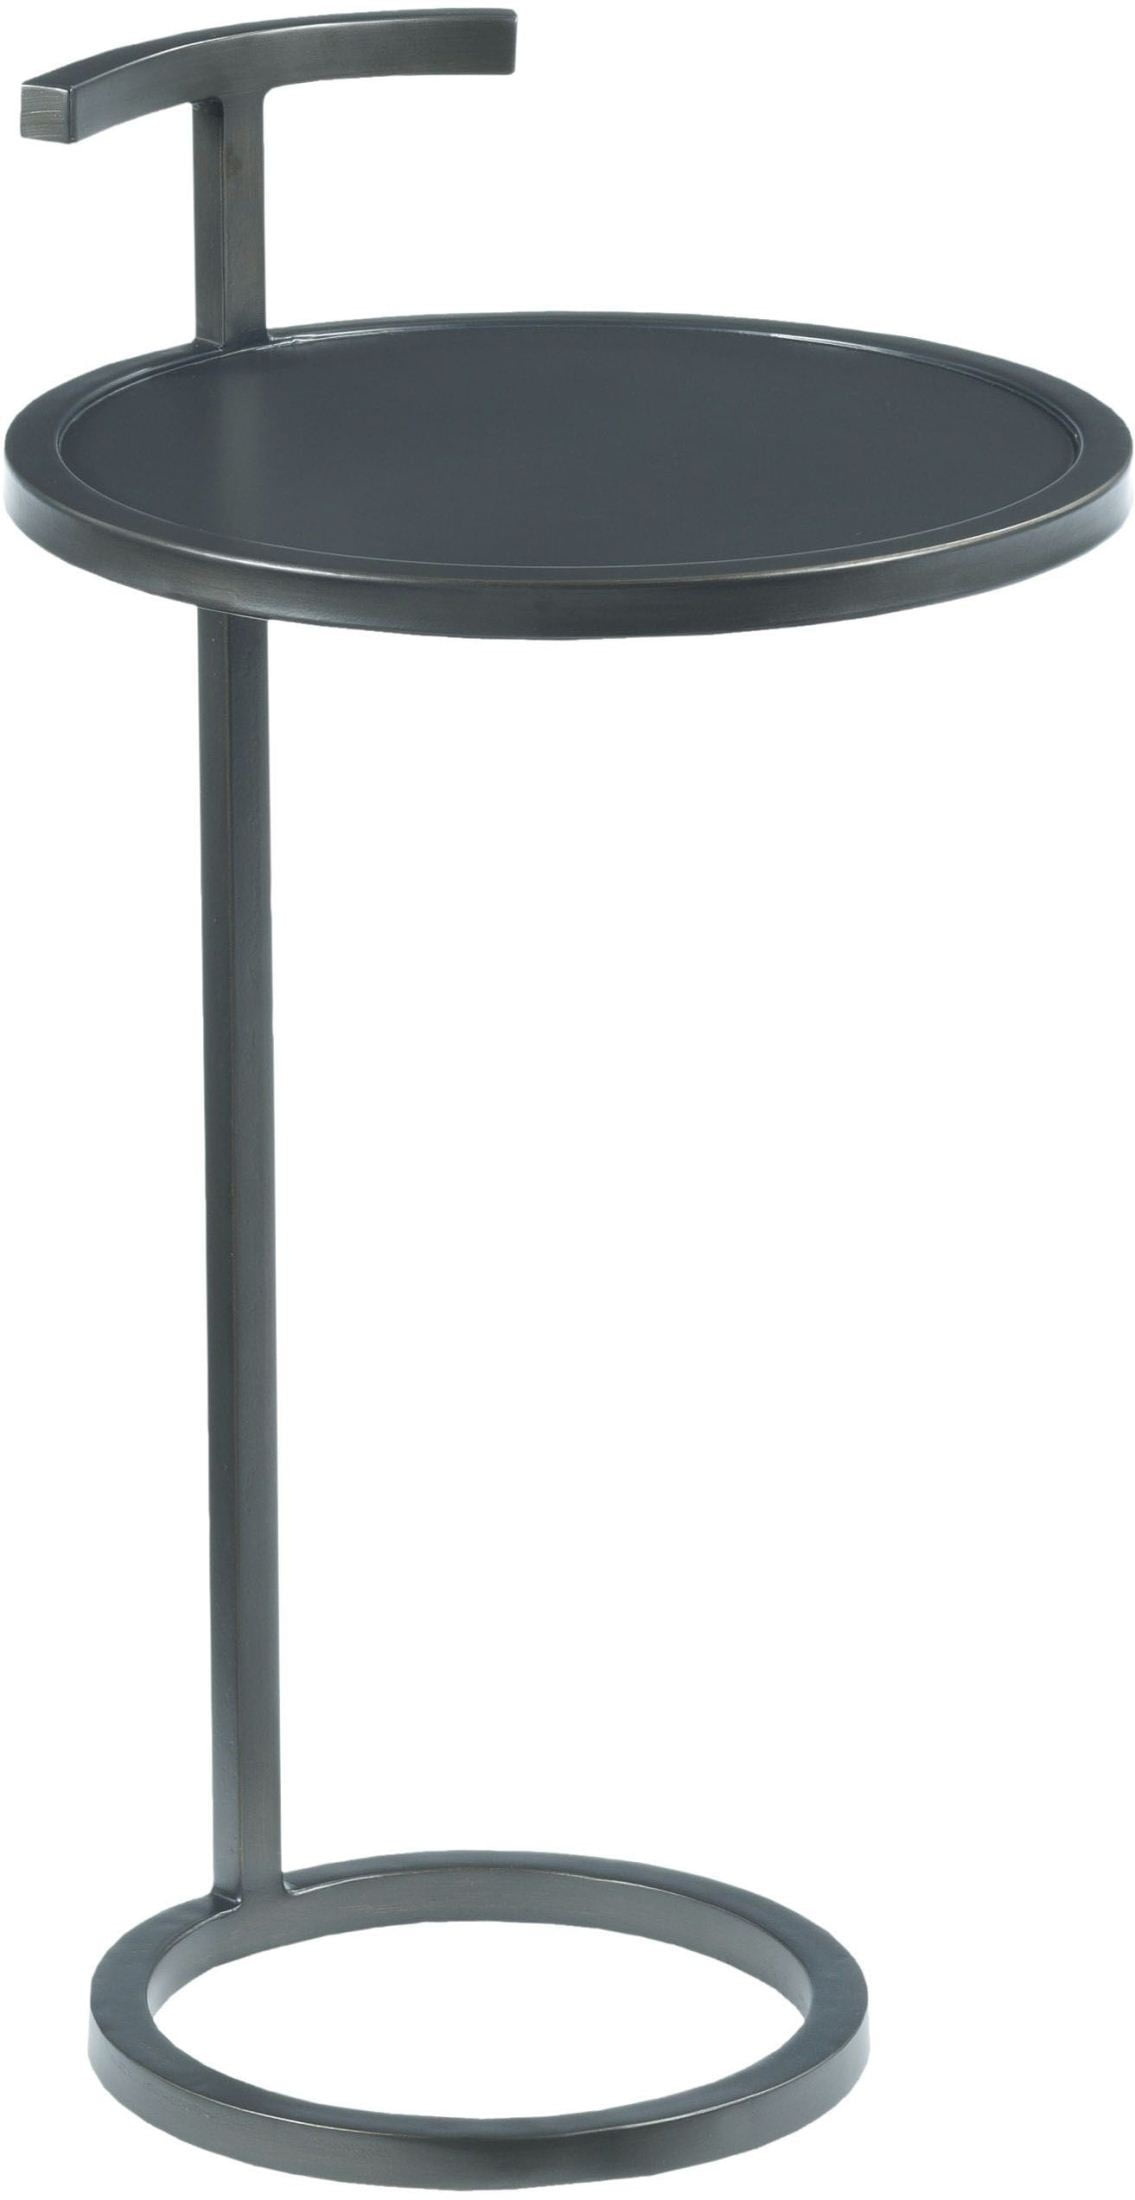 hidden treasures gray round accent table from hammary coleman cylinder drum hampton bay patio set rectangle end with drawer dining pedestal base only pottery barn kids coffee